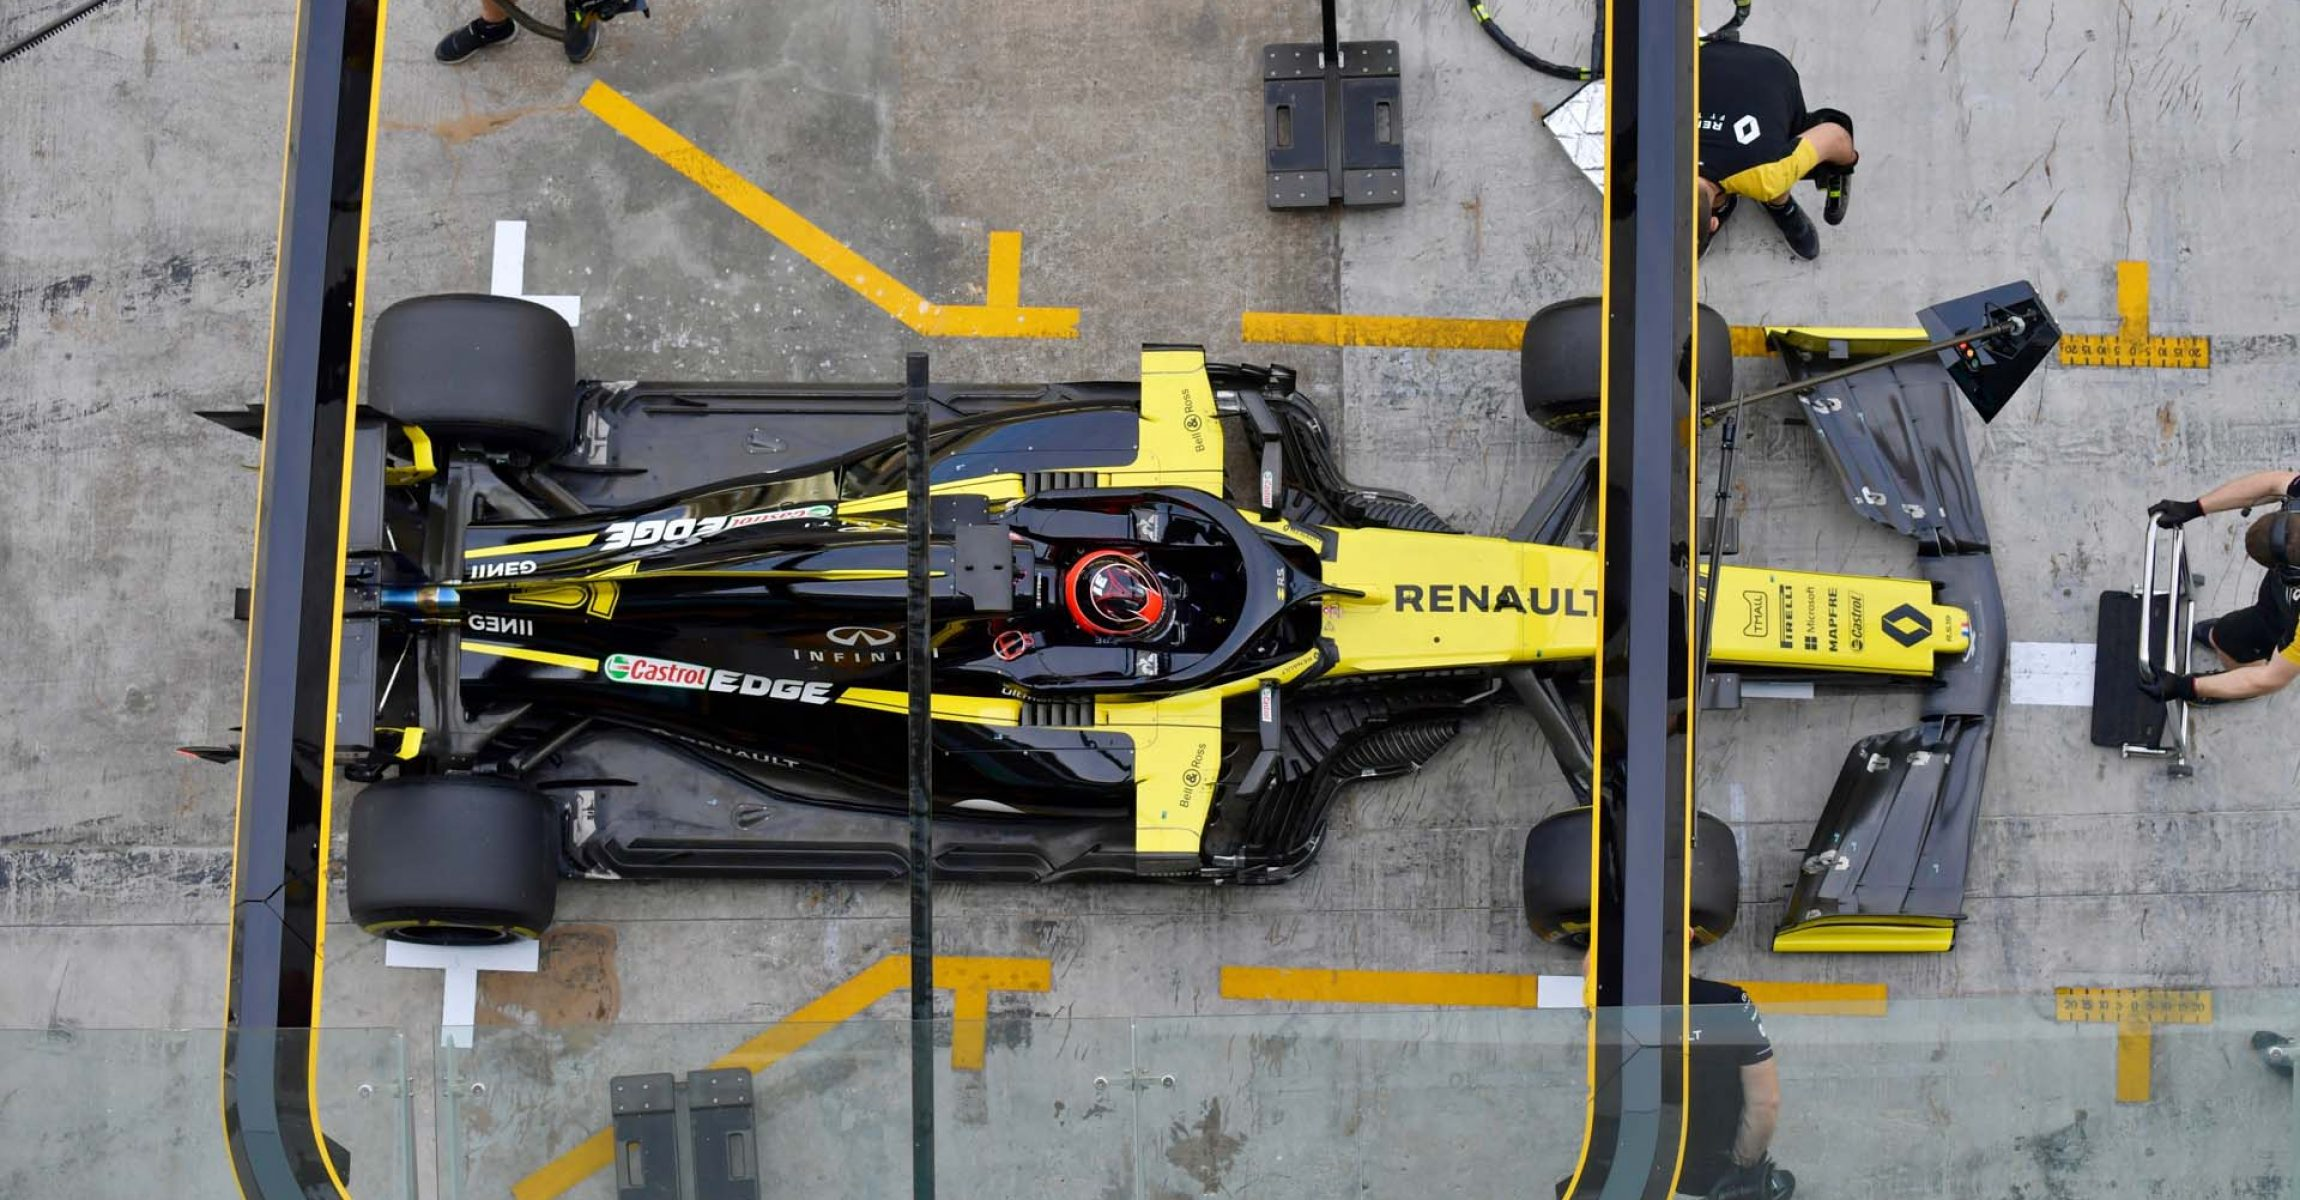 YAS MARINA CIRCUIT, UNITED ARAB EMIRATES - DECEMBER 03: Esteban Ocon, Renault R.S. 19 during the Abu Dhabi December Testing at Yas Marina Circuit on December 03, 2019 in Yas Marina Circuit, United Arab Emirates. (Photo by Jerry Andre / LAT Images)